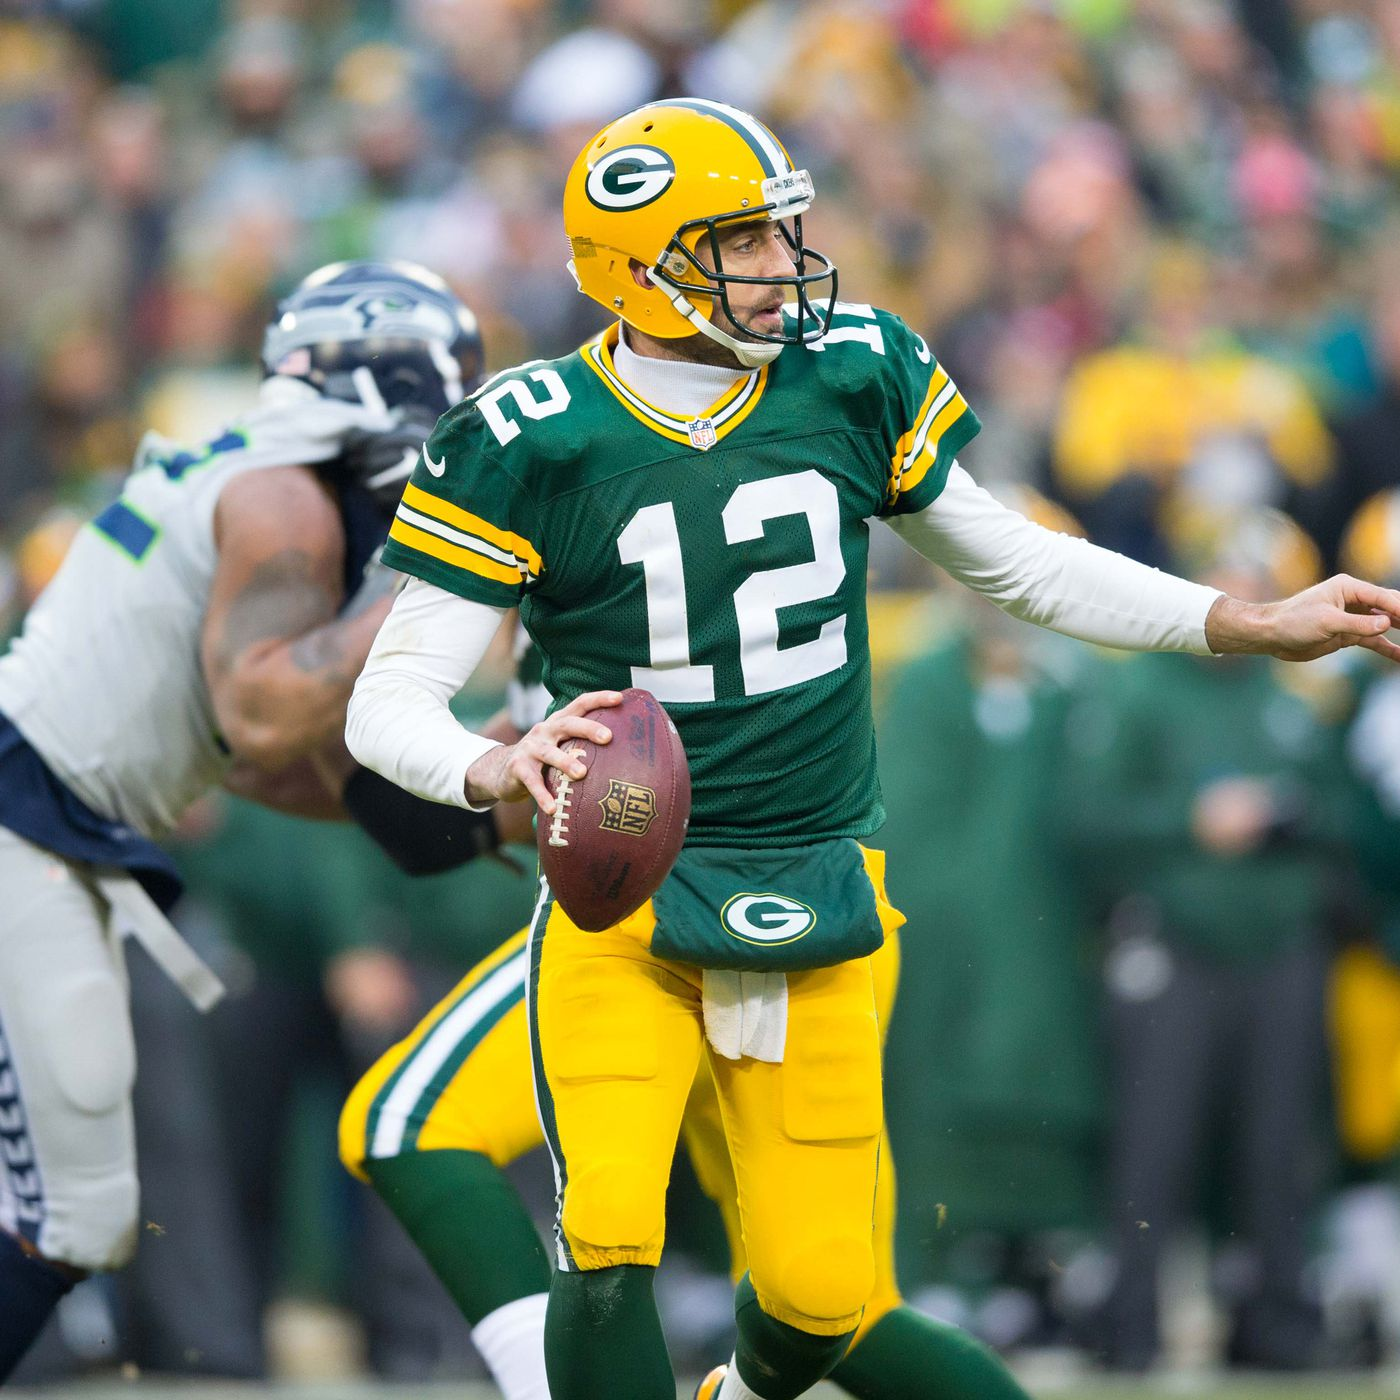 a1f03c5a NFL Christmas Eve schedule 2016: Start times, TV schedule, and live ...